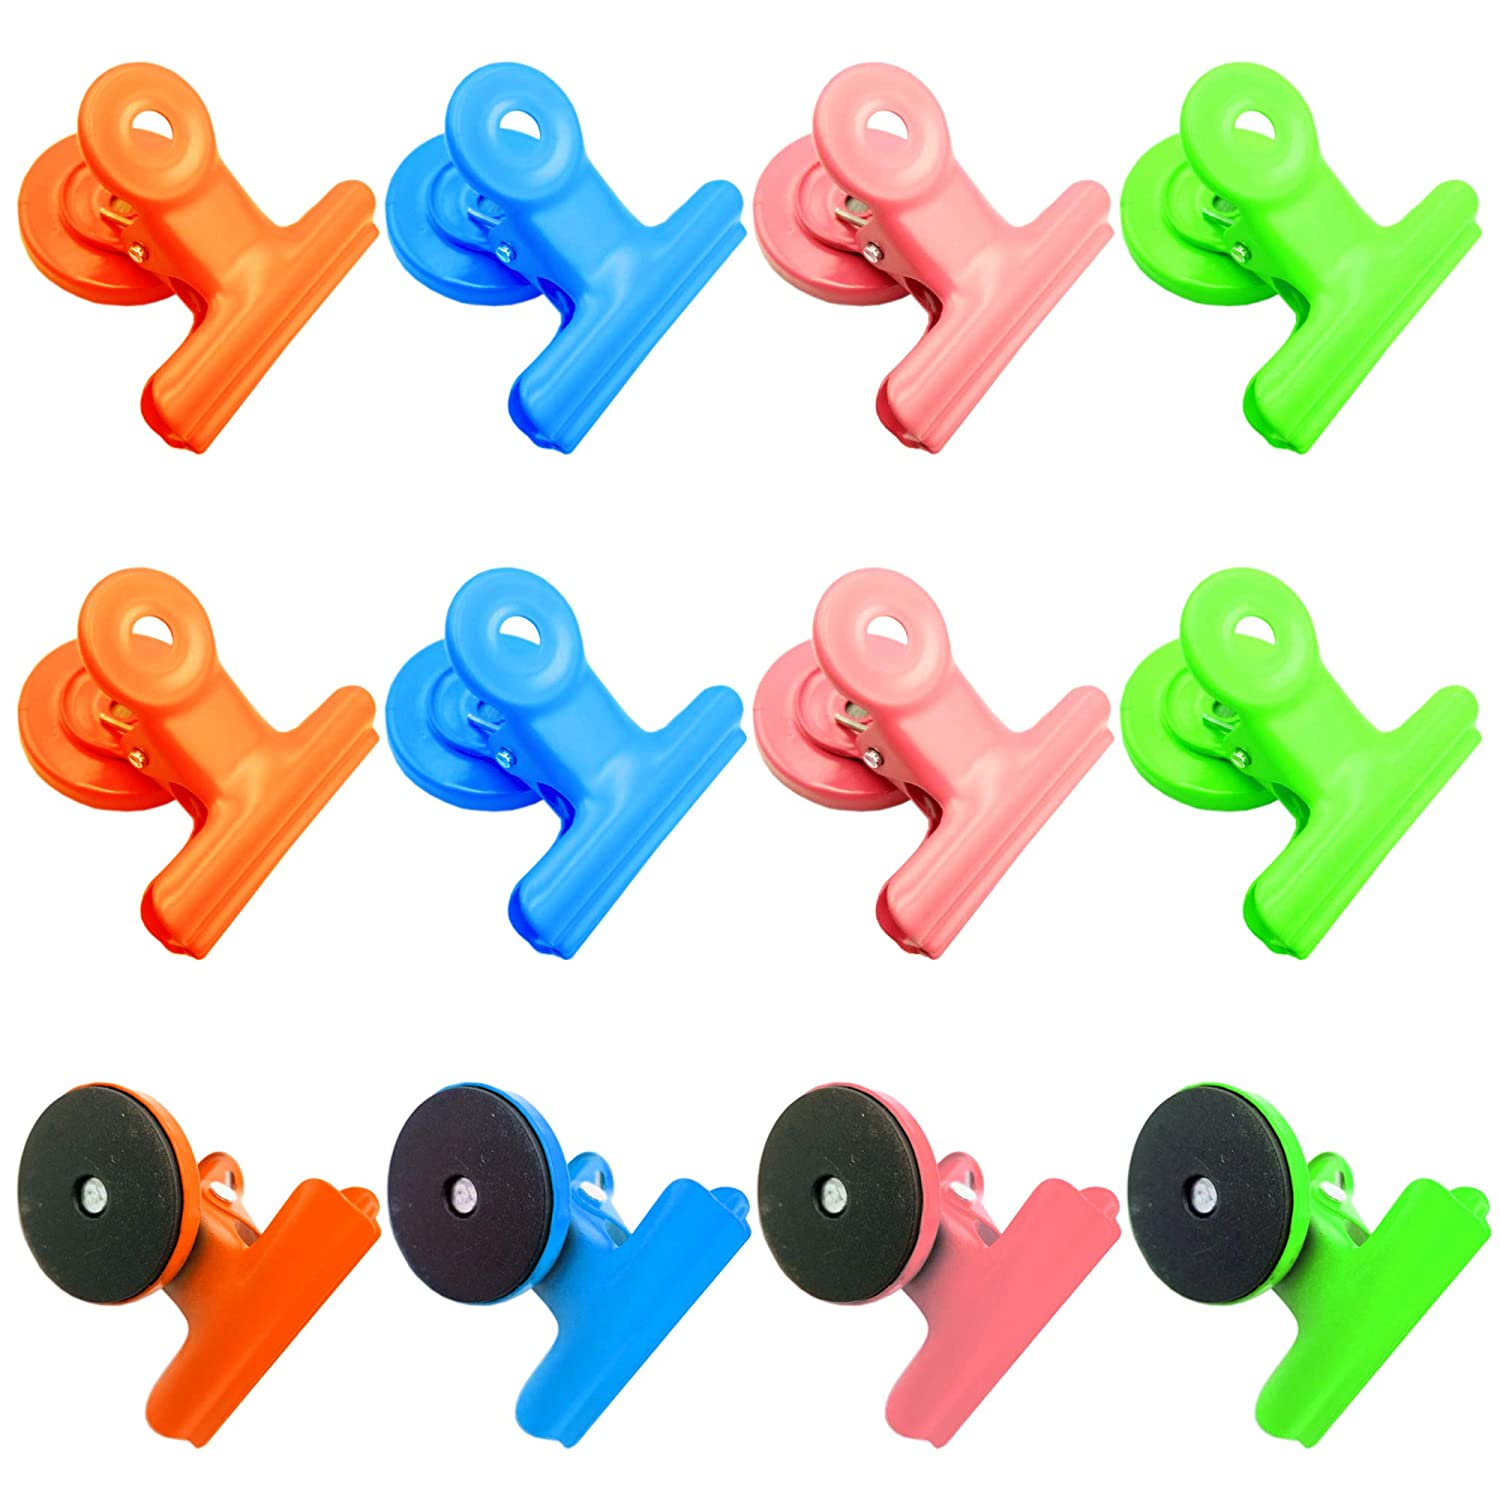 12-Piece Magnetic Clips, Magnet Paper Metal Clamps, Refrigerator Whiteboard Wall Fridge Magnetic Memo Note Clips Photo File Clamps, for Kitchen Classroom Office